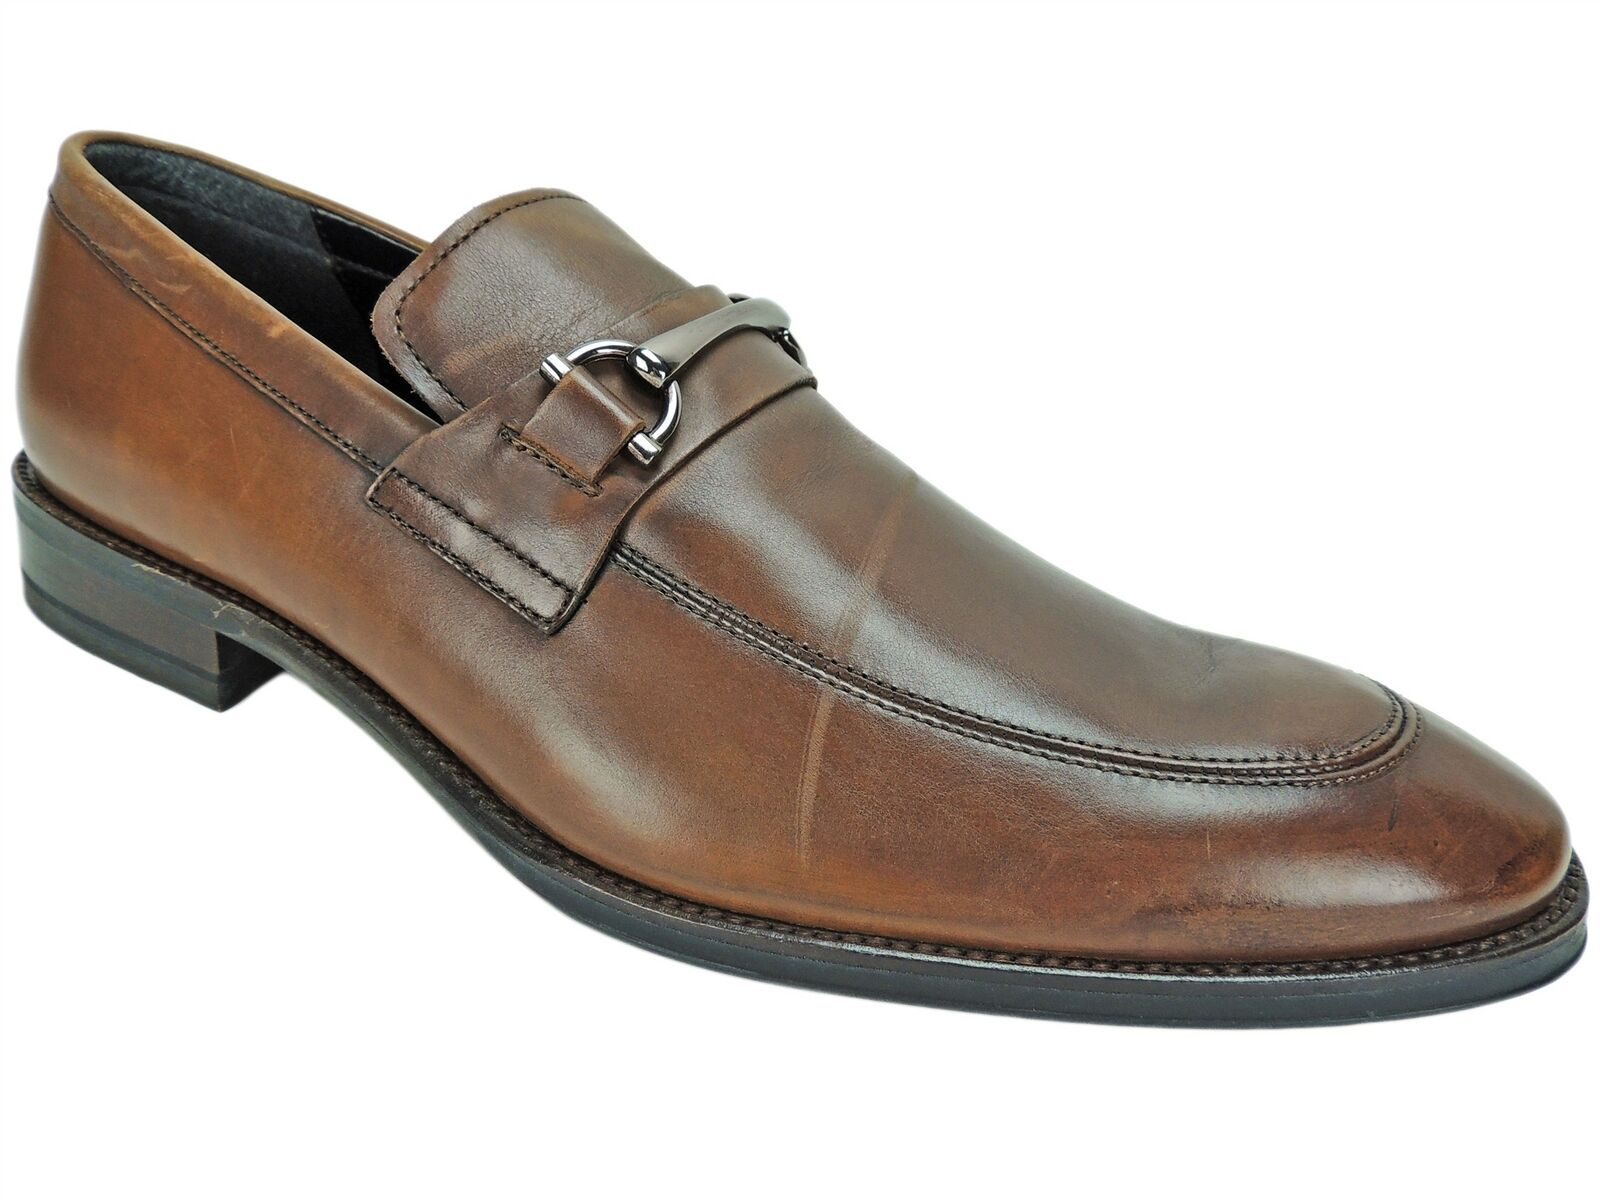 Kenneth Cole New York Men's Gathering Loafers Cognac Leather Size 12 M